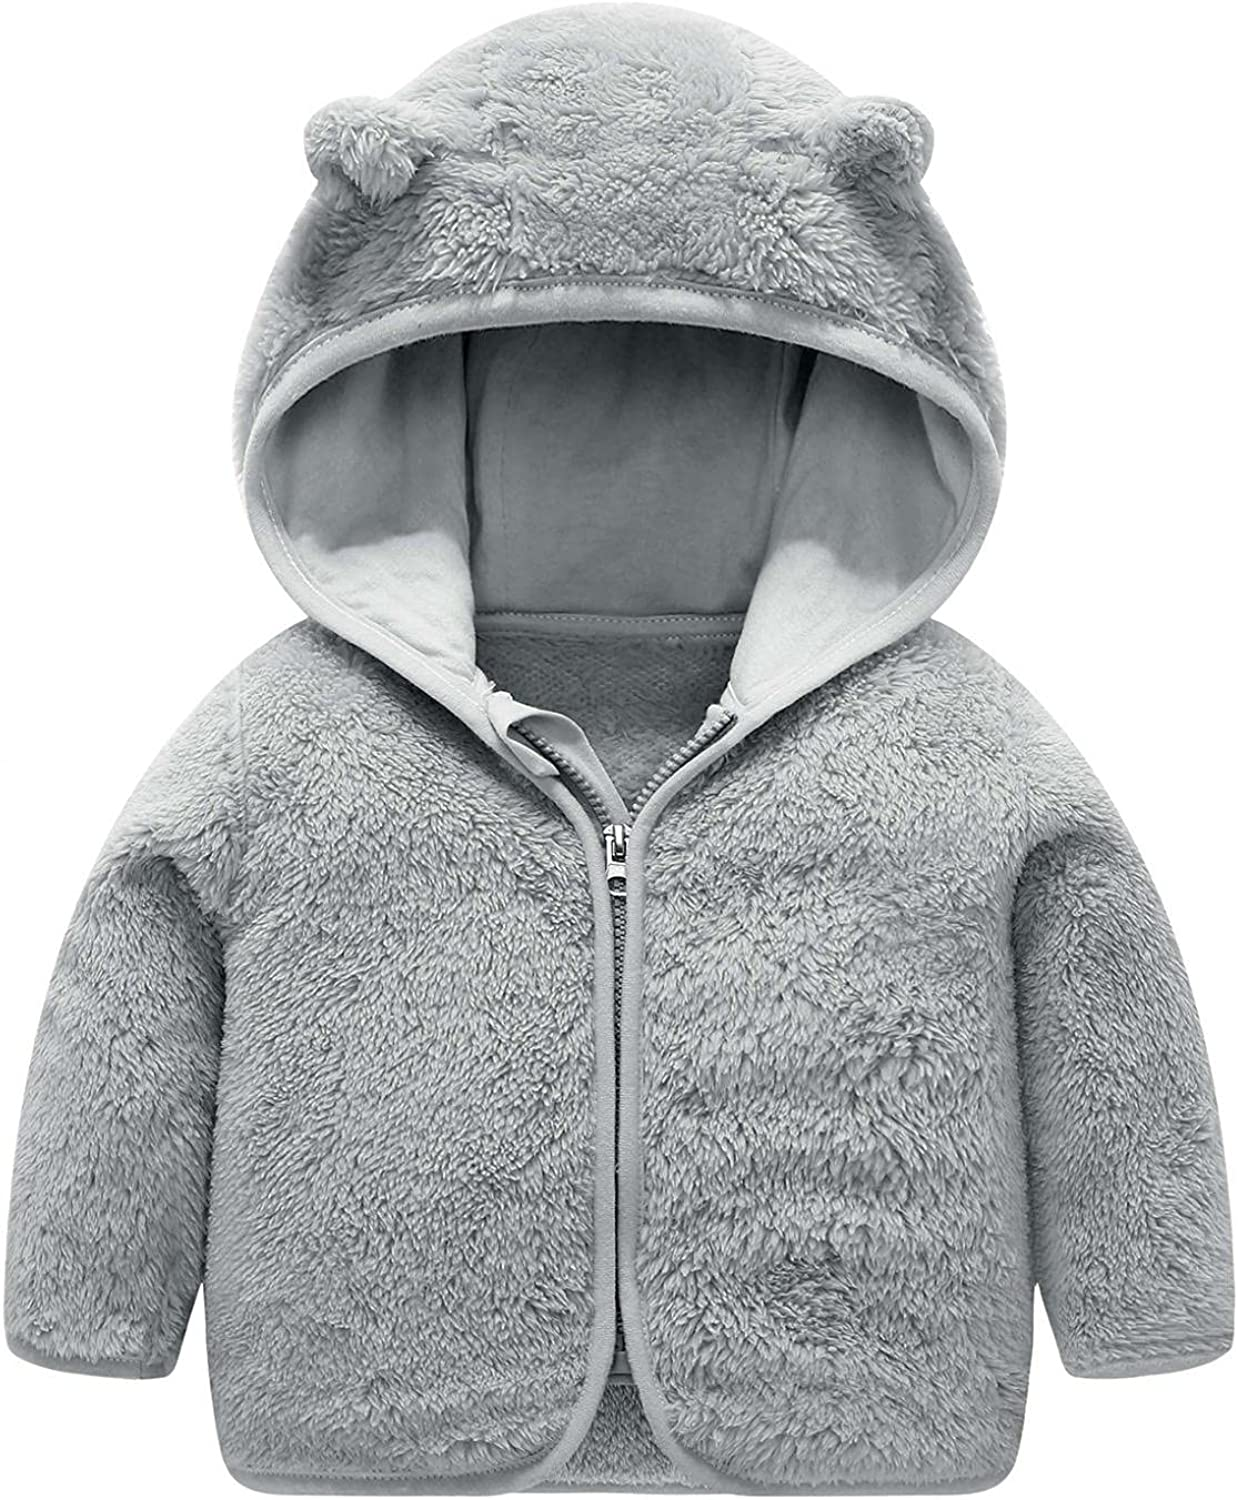 Toddler Polar Fleece Jacket with Lined Hooded Ranking TOP16 Don't miss the campaign Up C Zipper